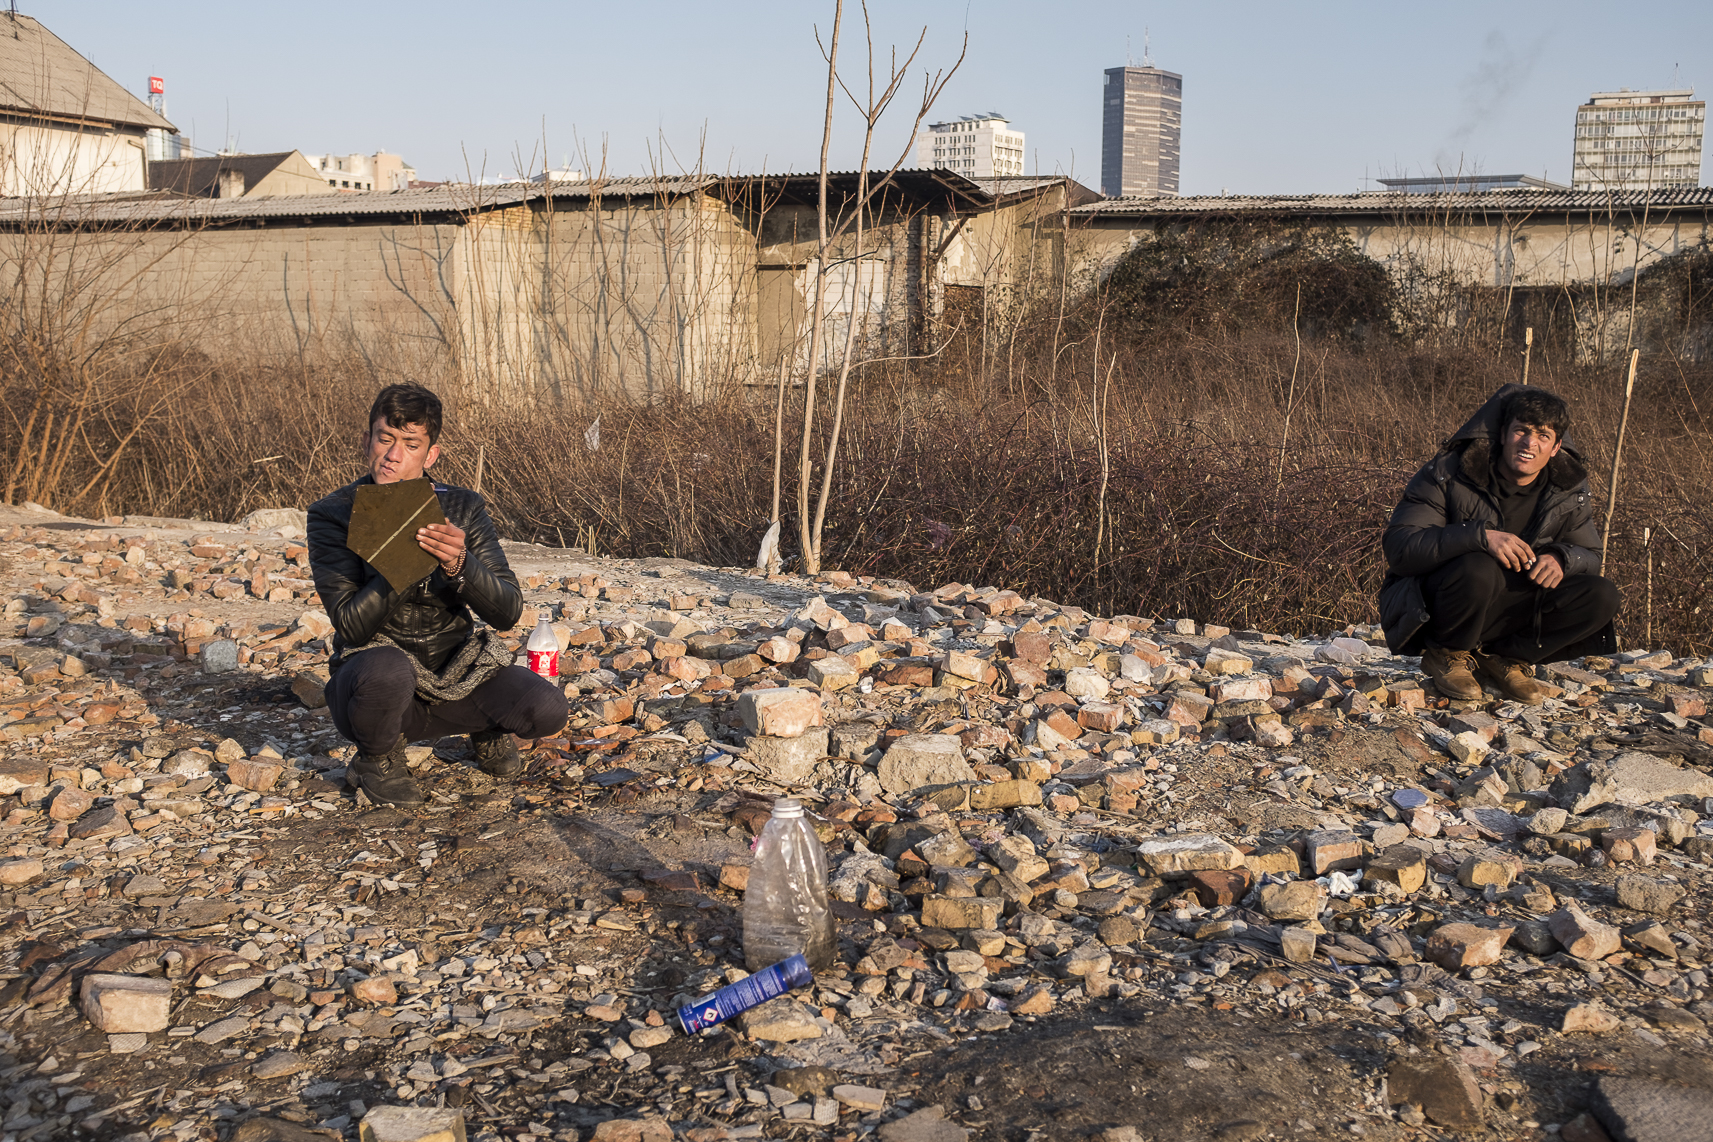 A migrant, left, shaves outside an abandoned warehouse where he and others took shelter in Belgrade, Serbia. February 13, 2107.